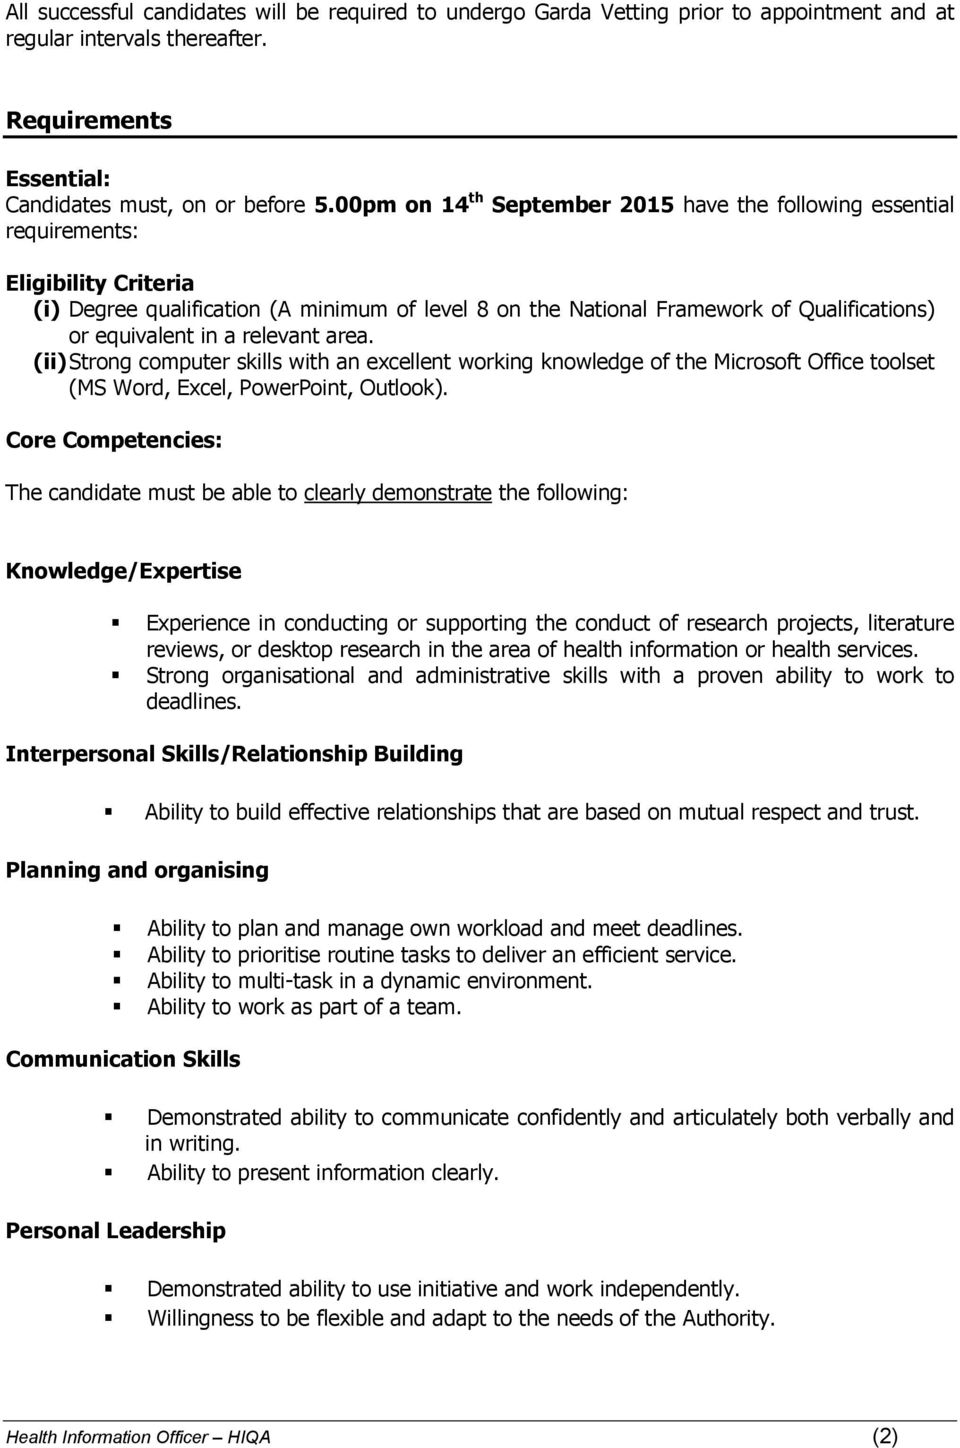 in a relevant area. (ii) Strong computer skills with an excellent working knowledge of the Microsoft Office toolset (MS Word, Excel, PowerPoint, Outlook).